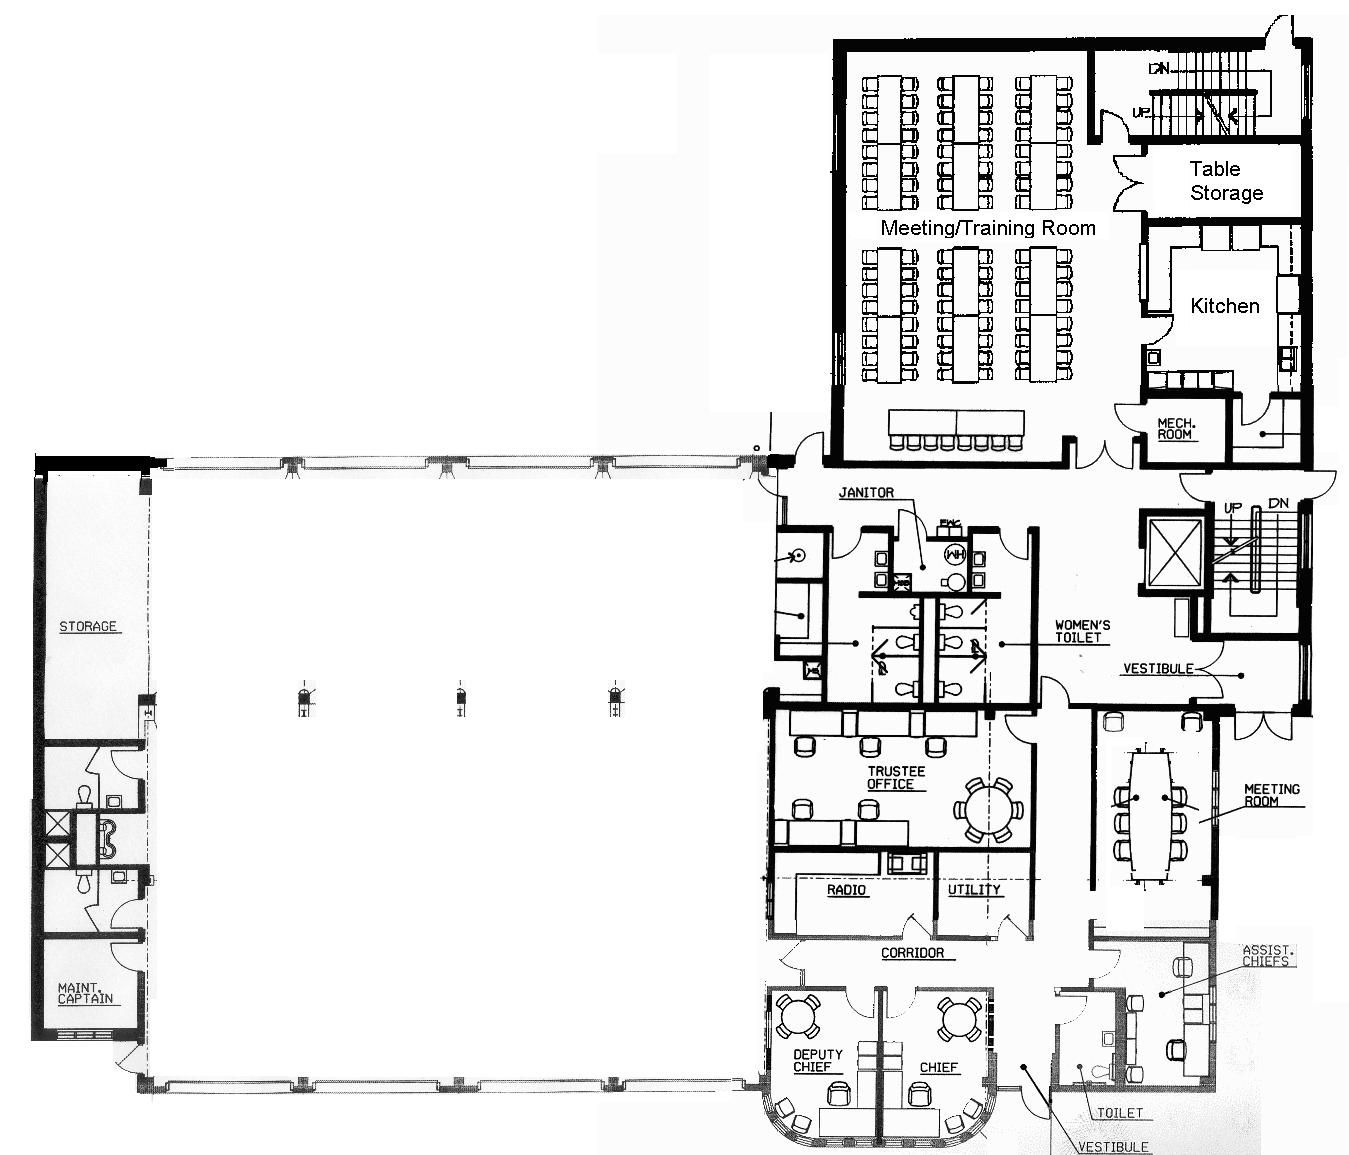 Nice Small Fire Station Floor Plans With Click Image To Enlarge Jpg 1349 1155 Fire Station Floor Plans How To Plan